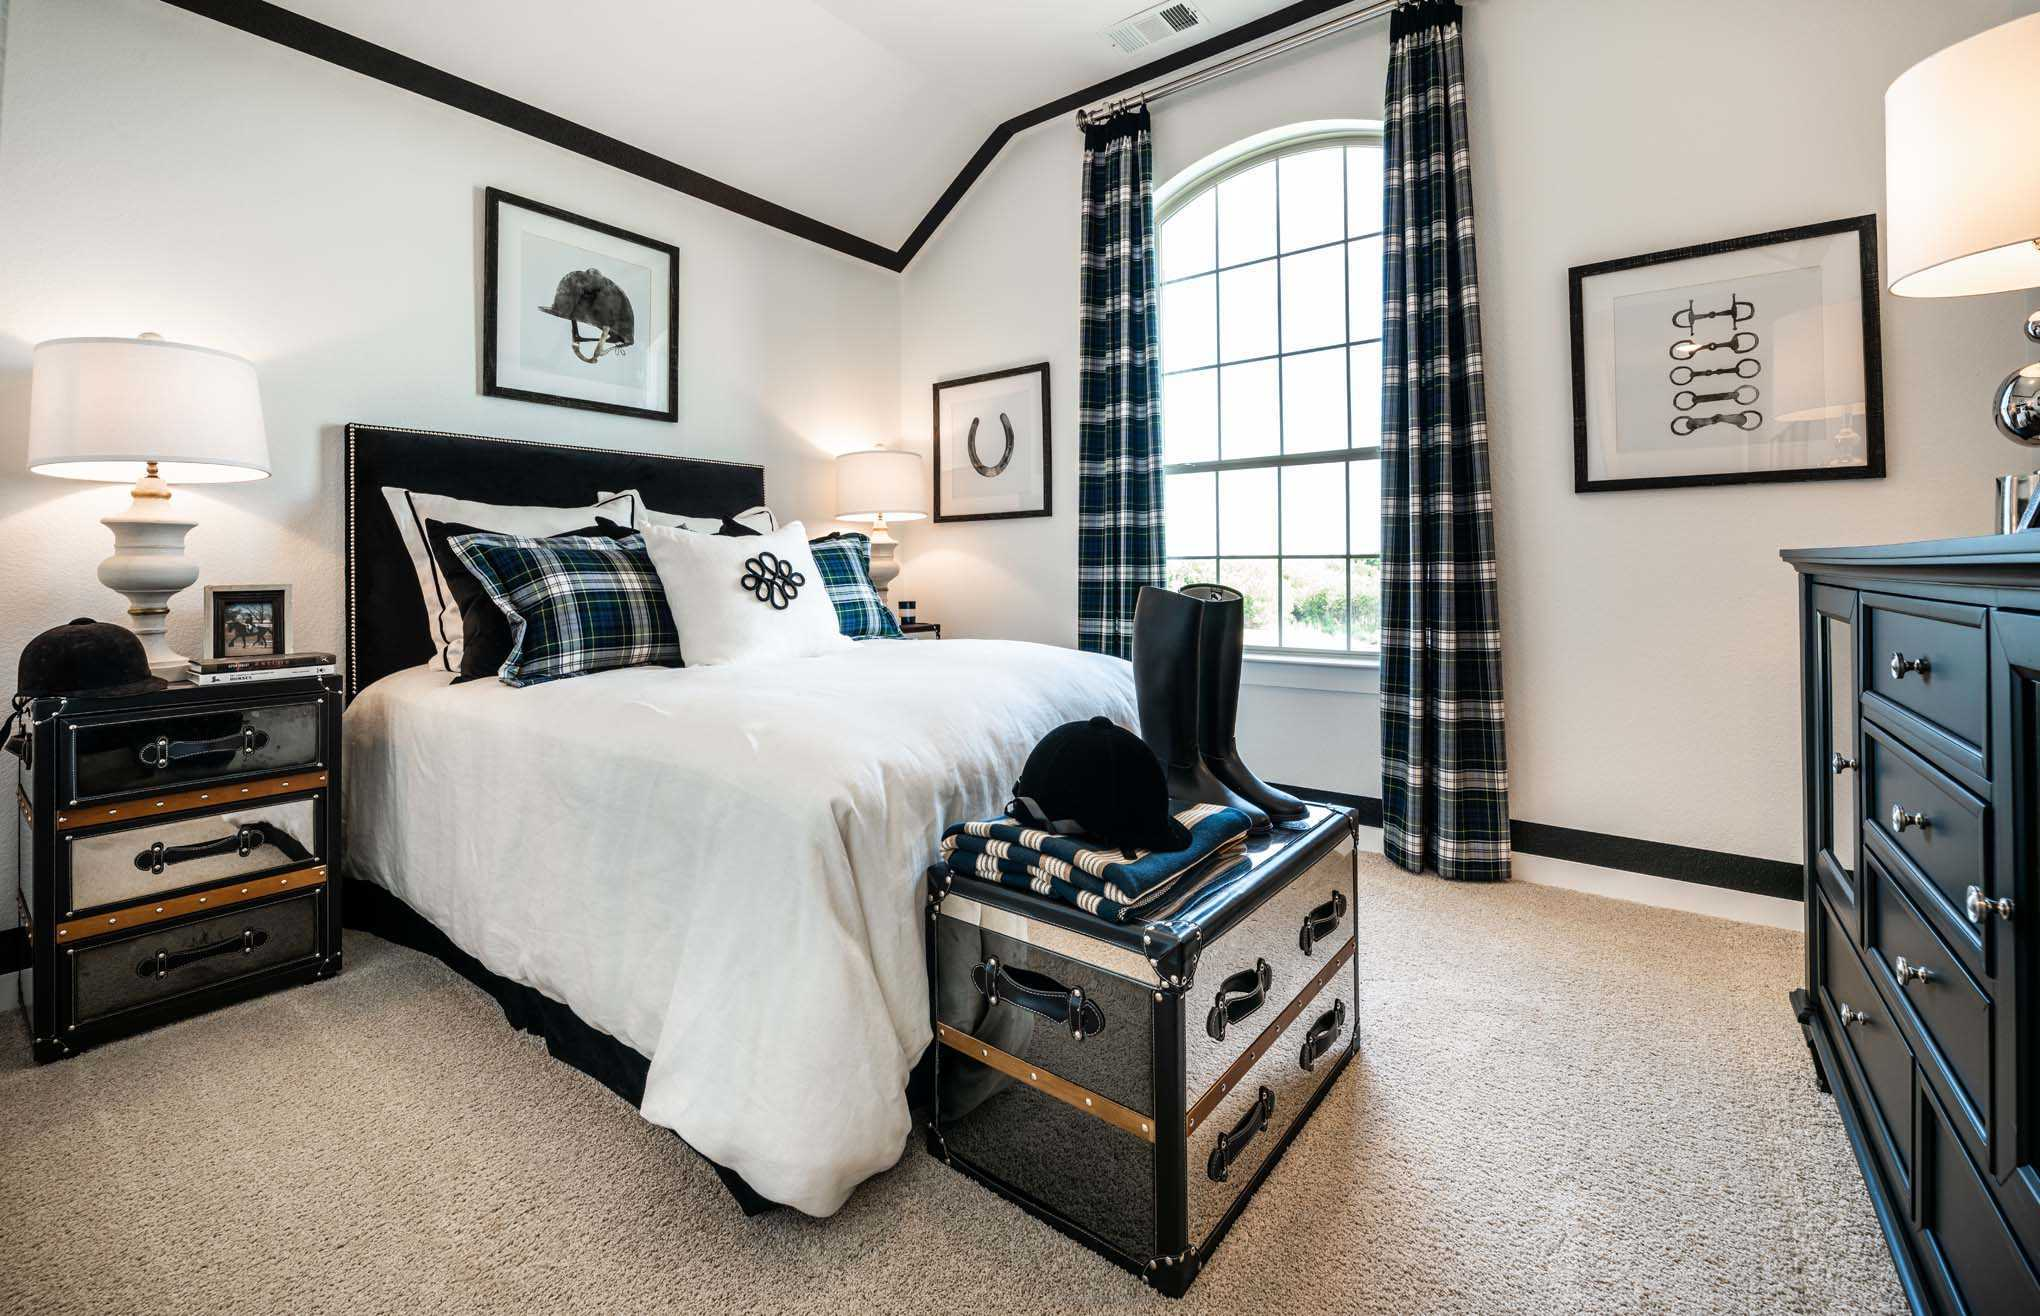 Bedroom featured in the Plan Blenheim By Highland Homes in Sherman-Denison, TX